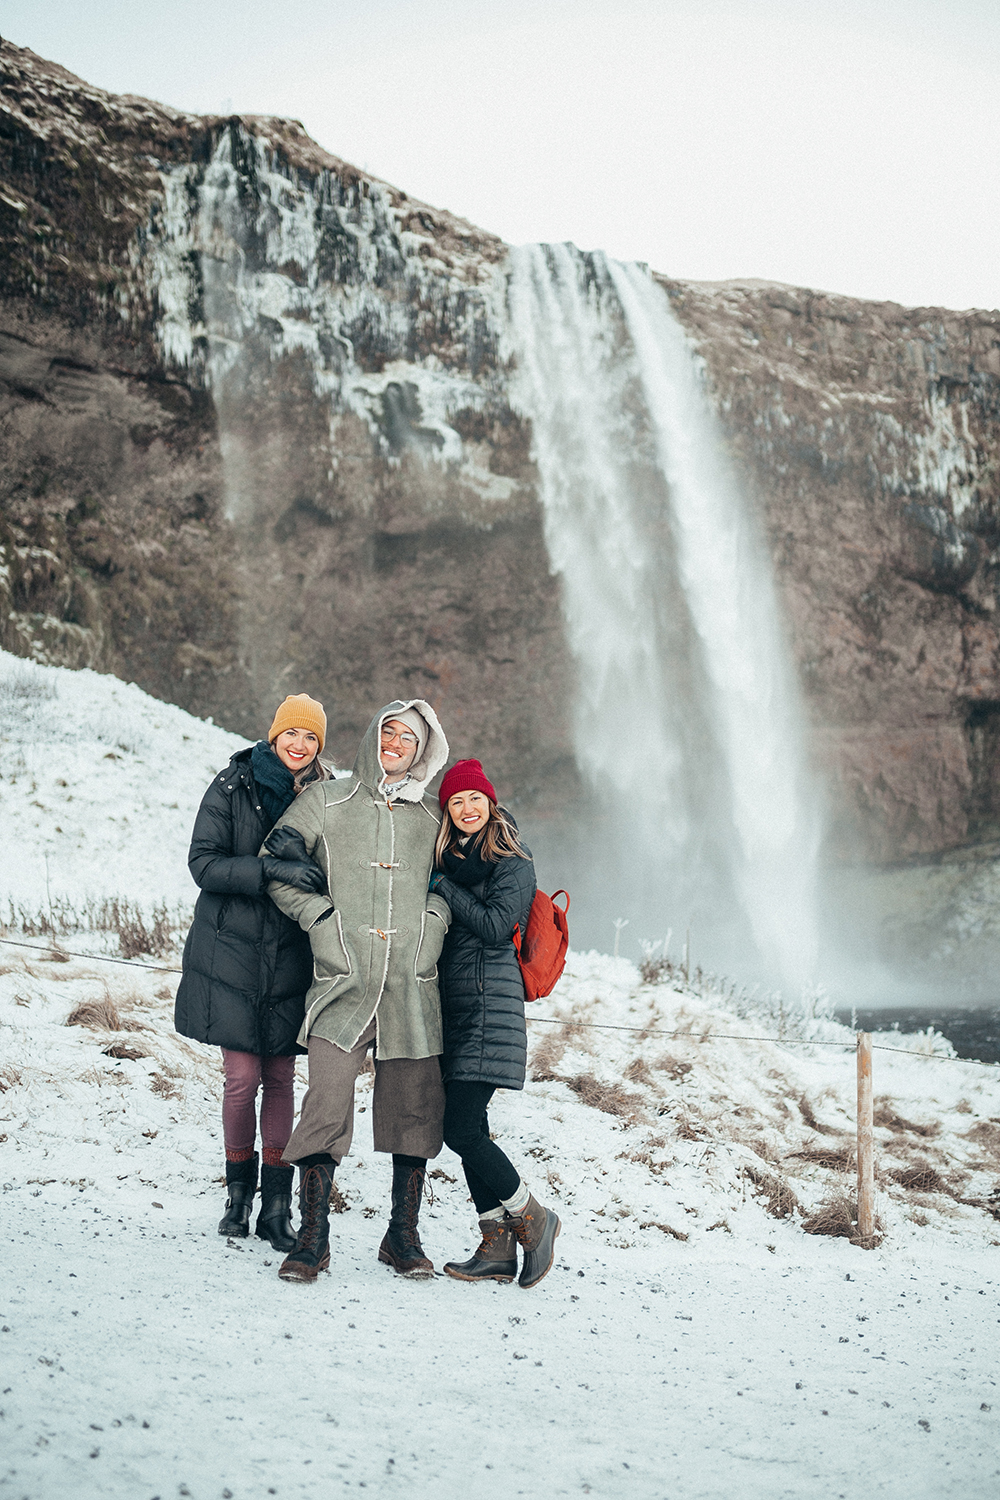 1-livvyland-blog-olivia-watson-travel-lifestyle-blogger-iceland-road-trip-what-to-do-pack-reykjavik-noken-travel-guide-Seljalandsfoss-waterfall-best-friends